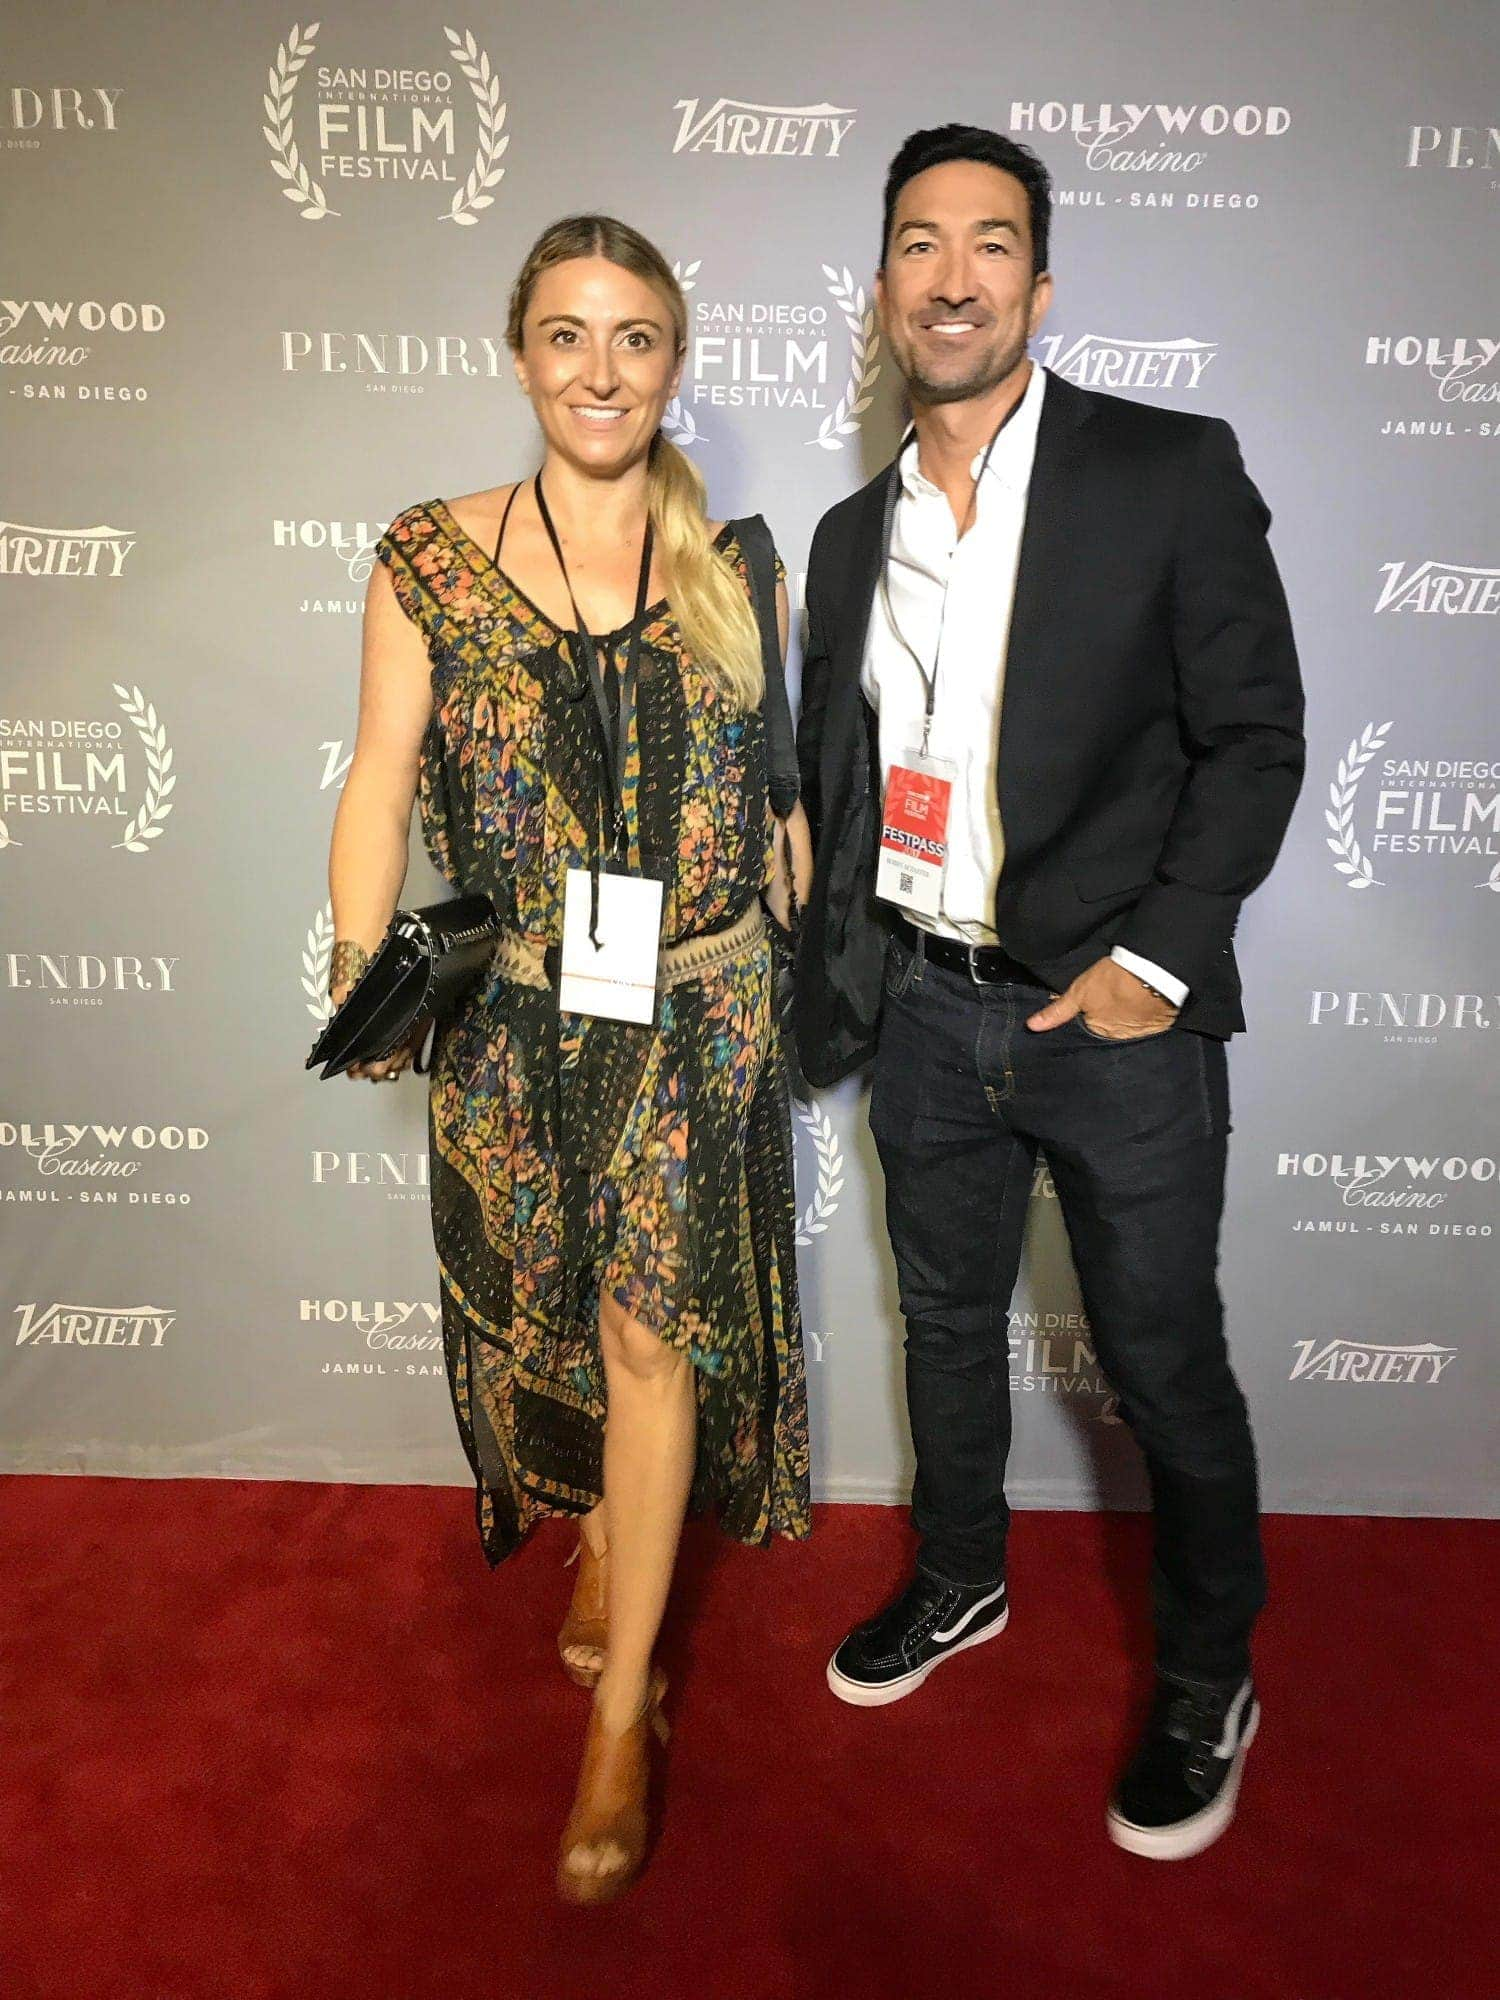 Bobby and Danielle at San Diego film festival